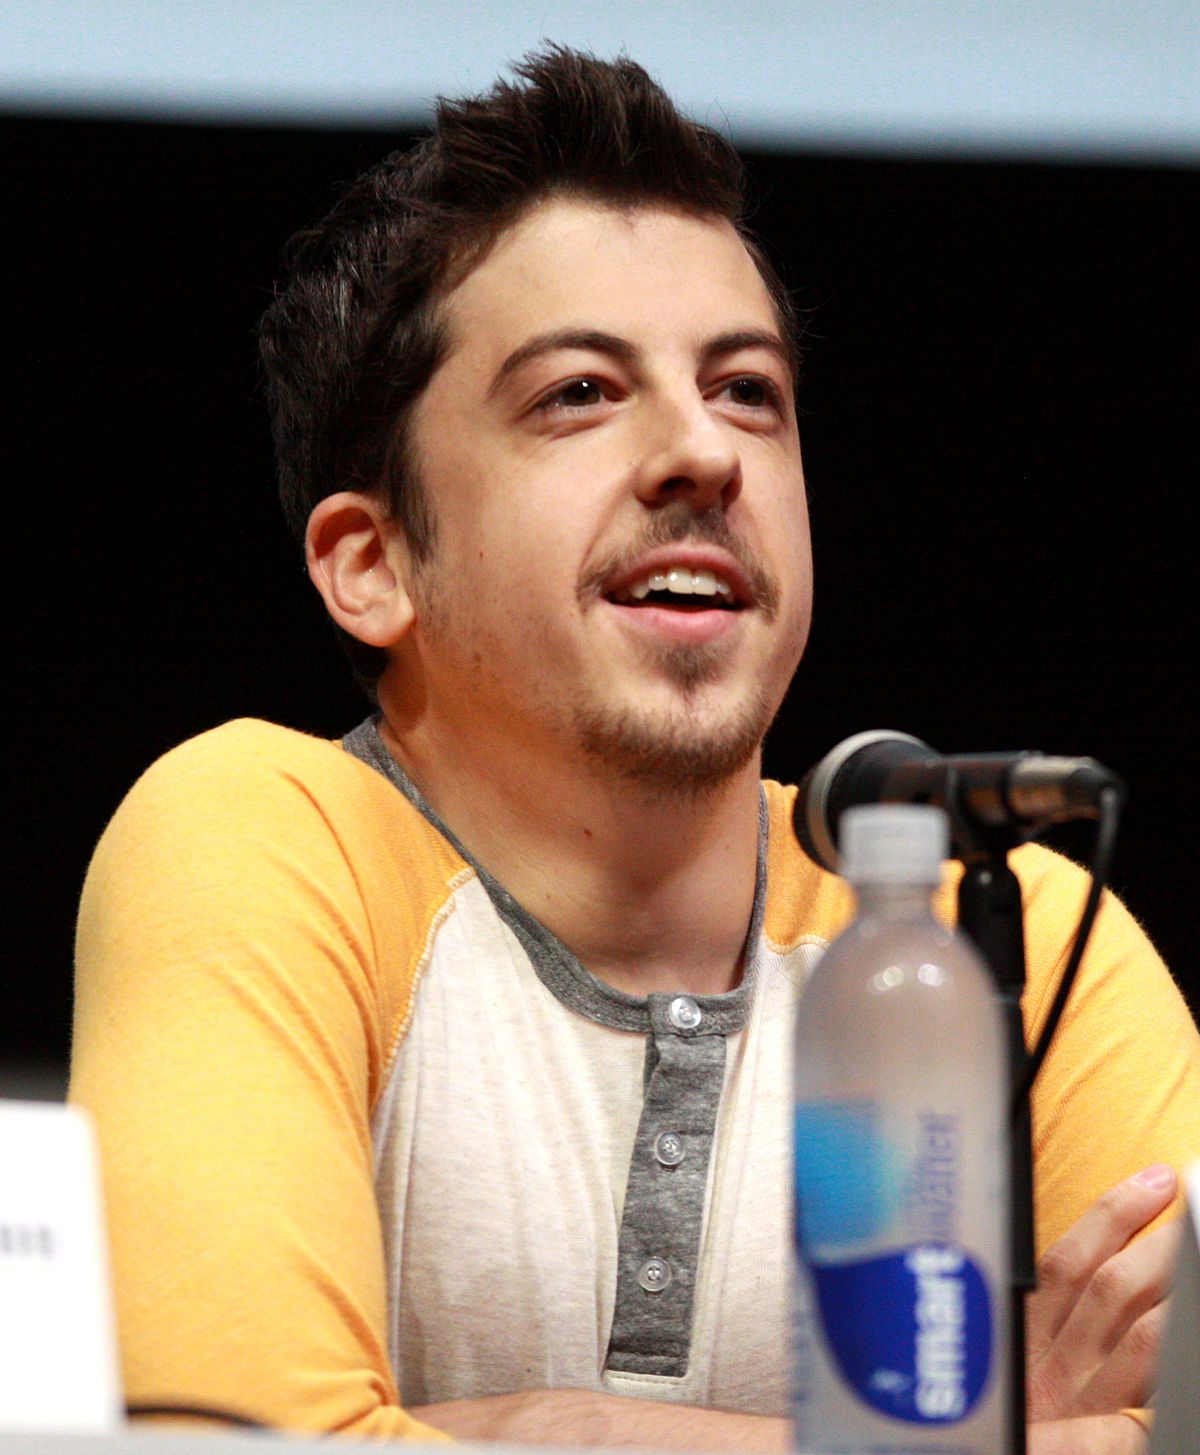 Christopher Mintz-Plasse - Wikipedia